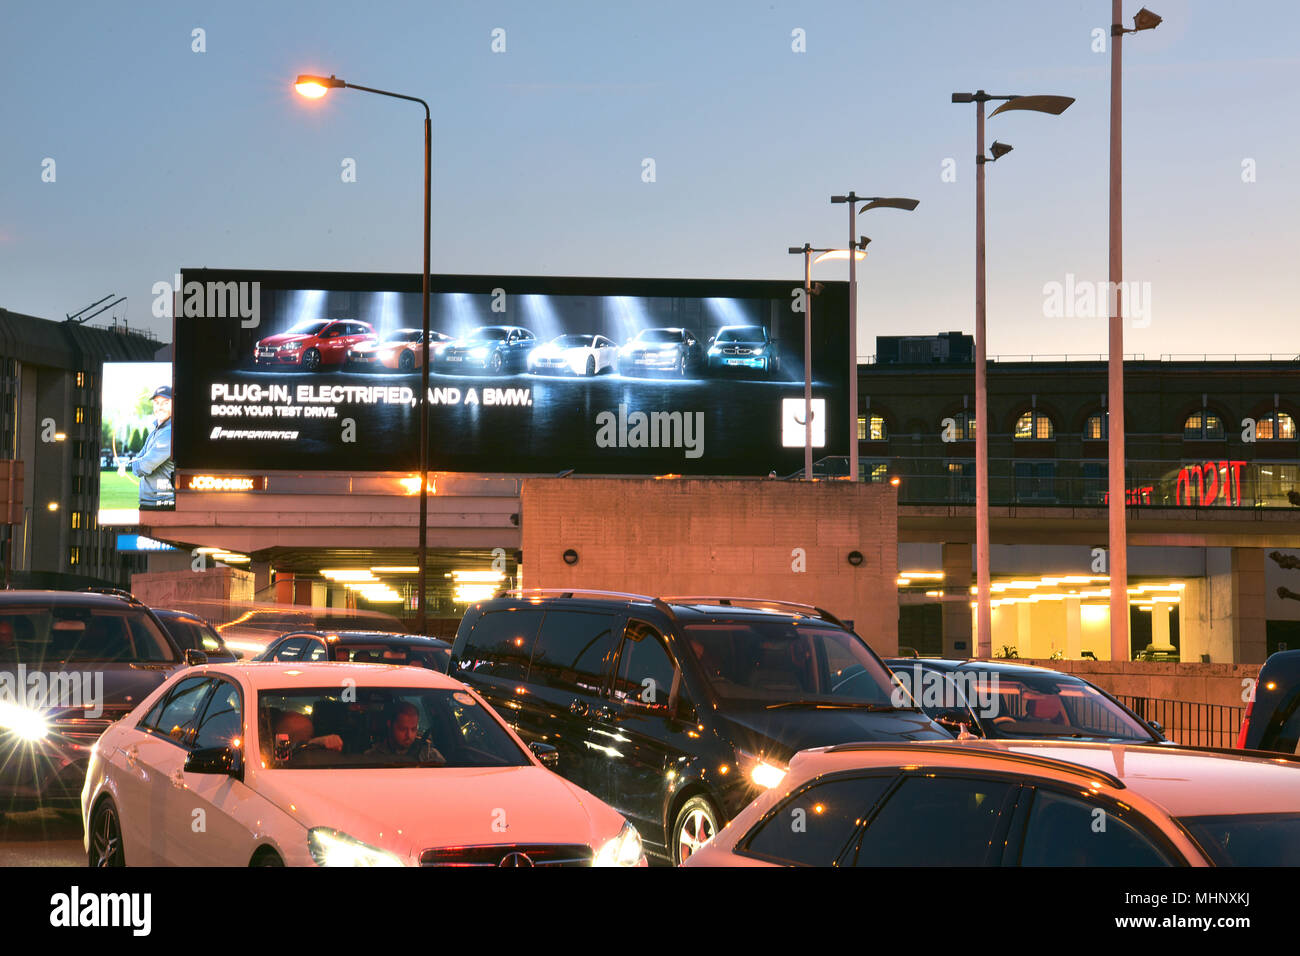 Digital advertising hoardings promoting the electric BMW car on the Talgarth Road, Fulham  in West London, UK. - Stock Image